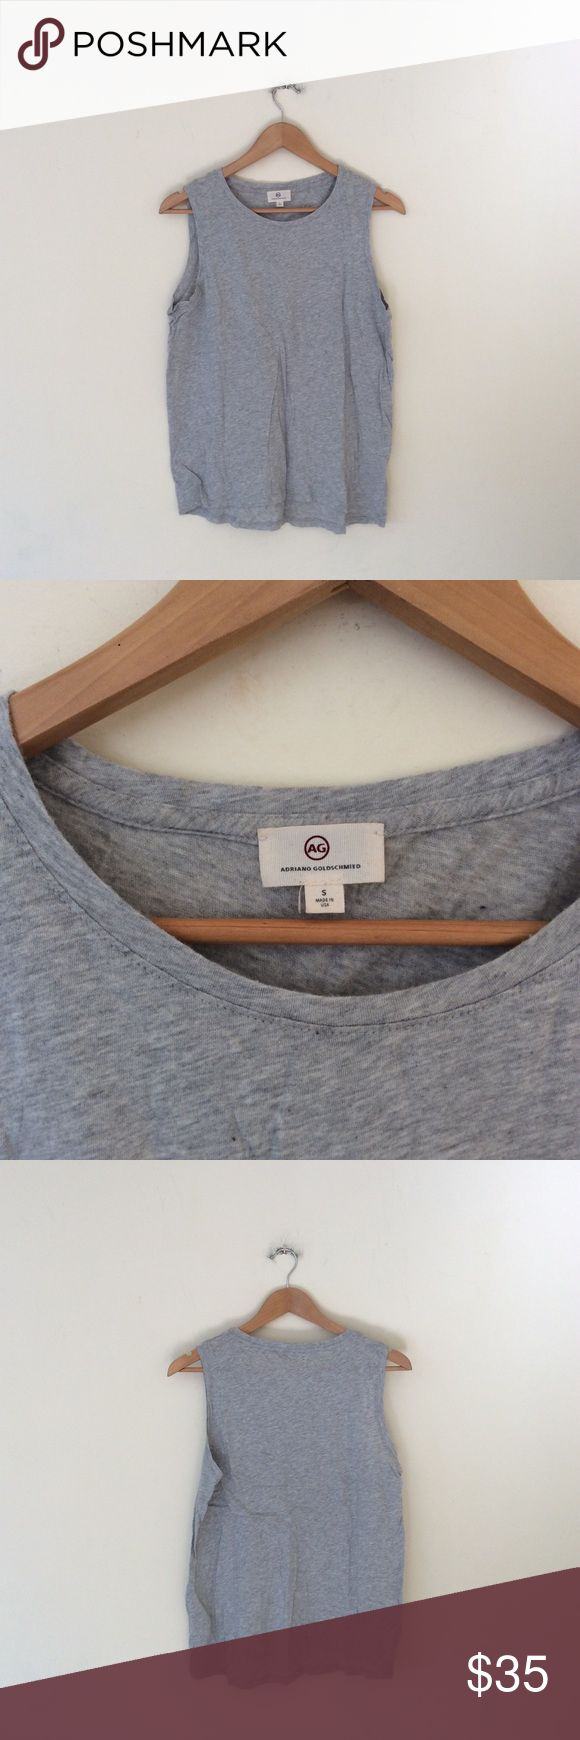 AG Adriano Goldschmied Gray Muscle Tank Top Small AG Adriano Goldschmied Gray Muscle Tank Top Small - Used AG Adriano Goldschmied Tops Tank Tops